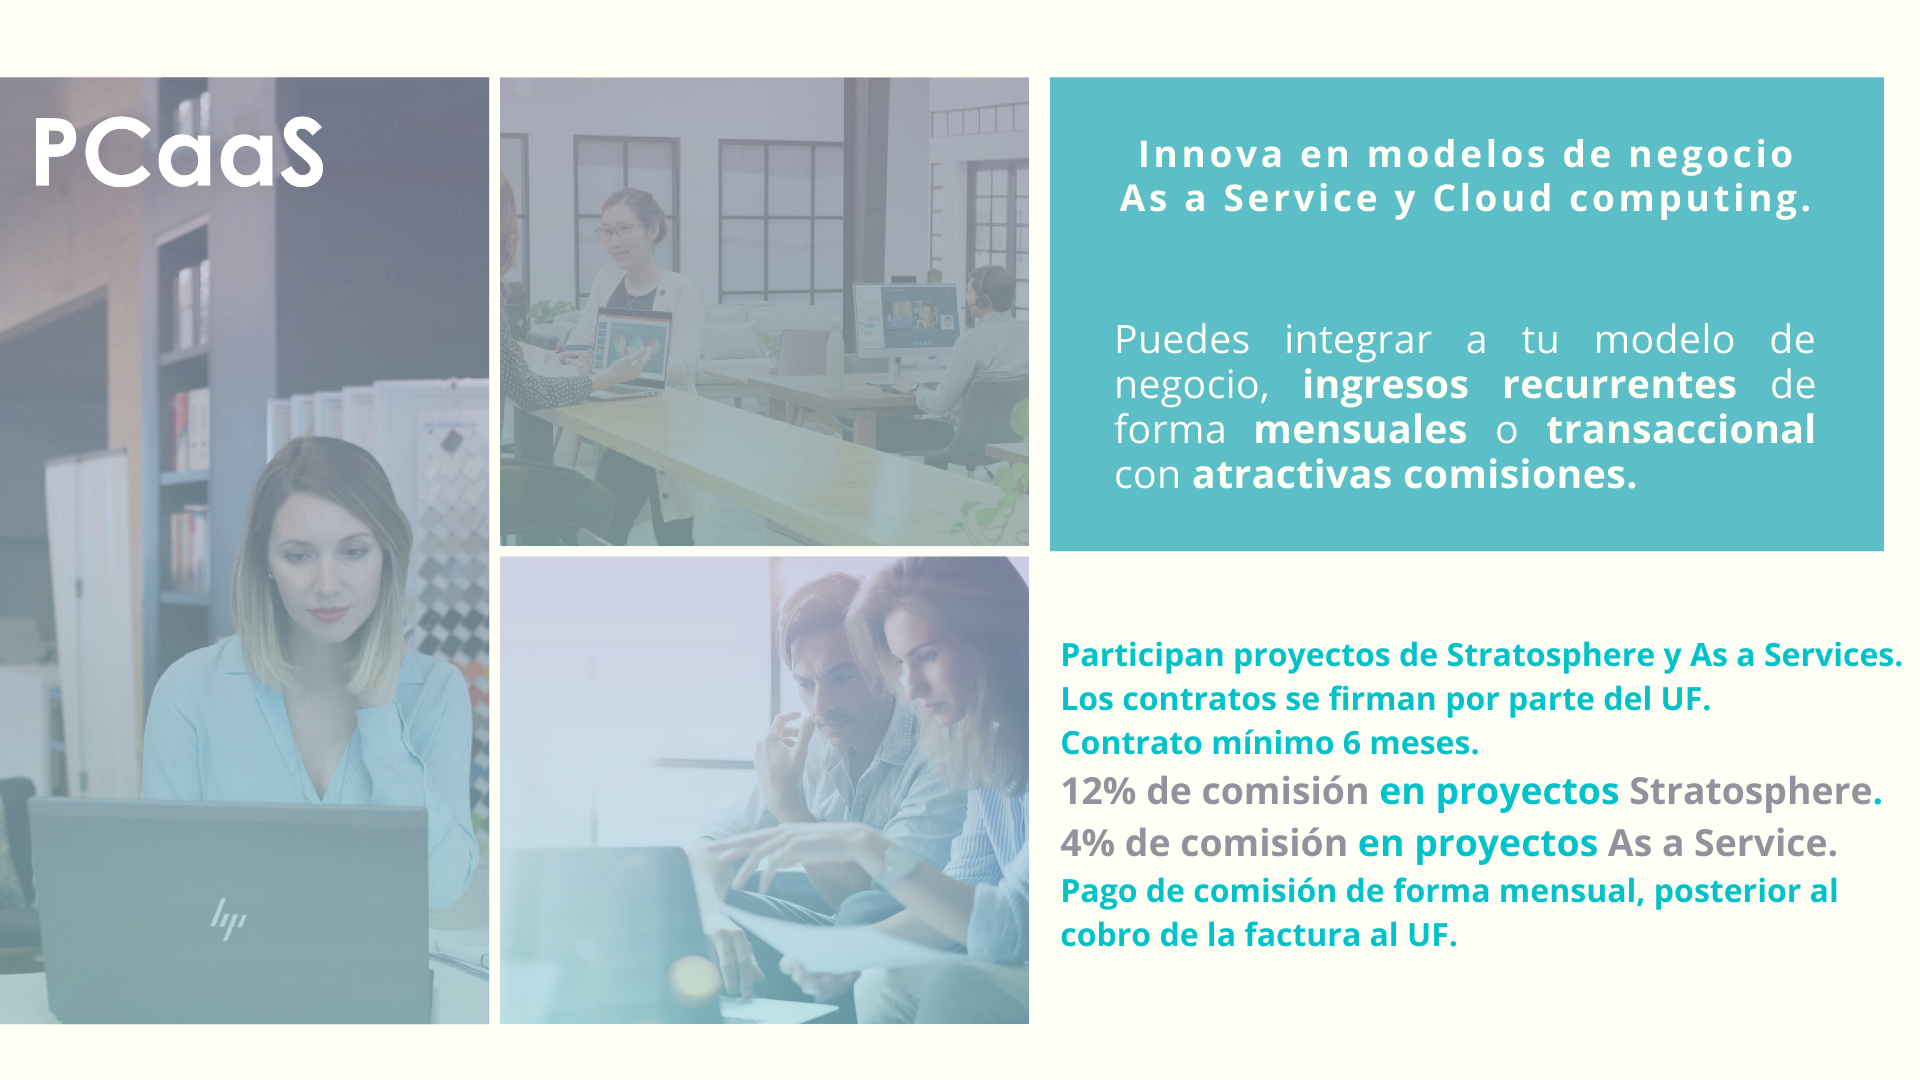 As a Service- PCaas Mayo